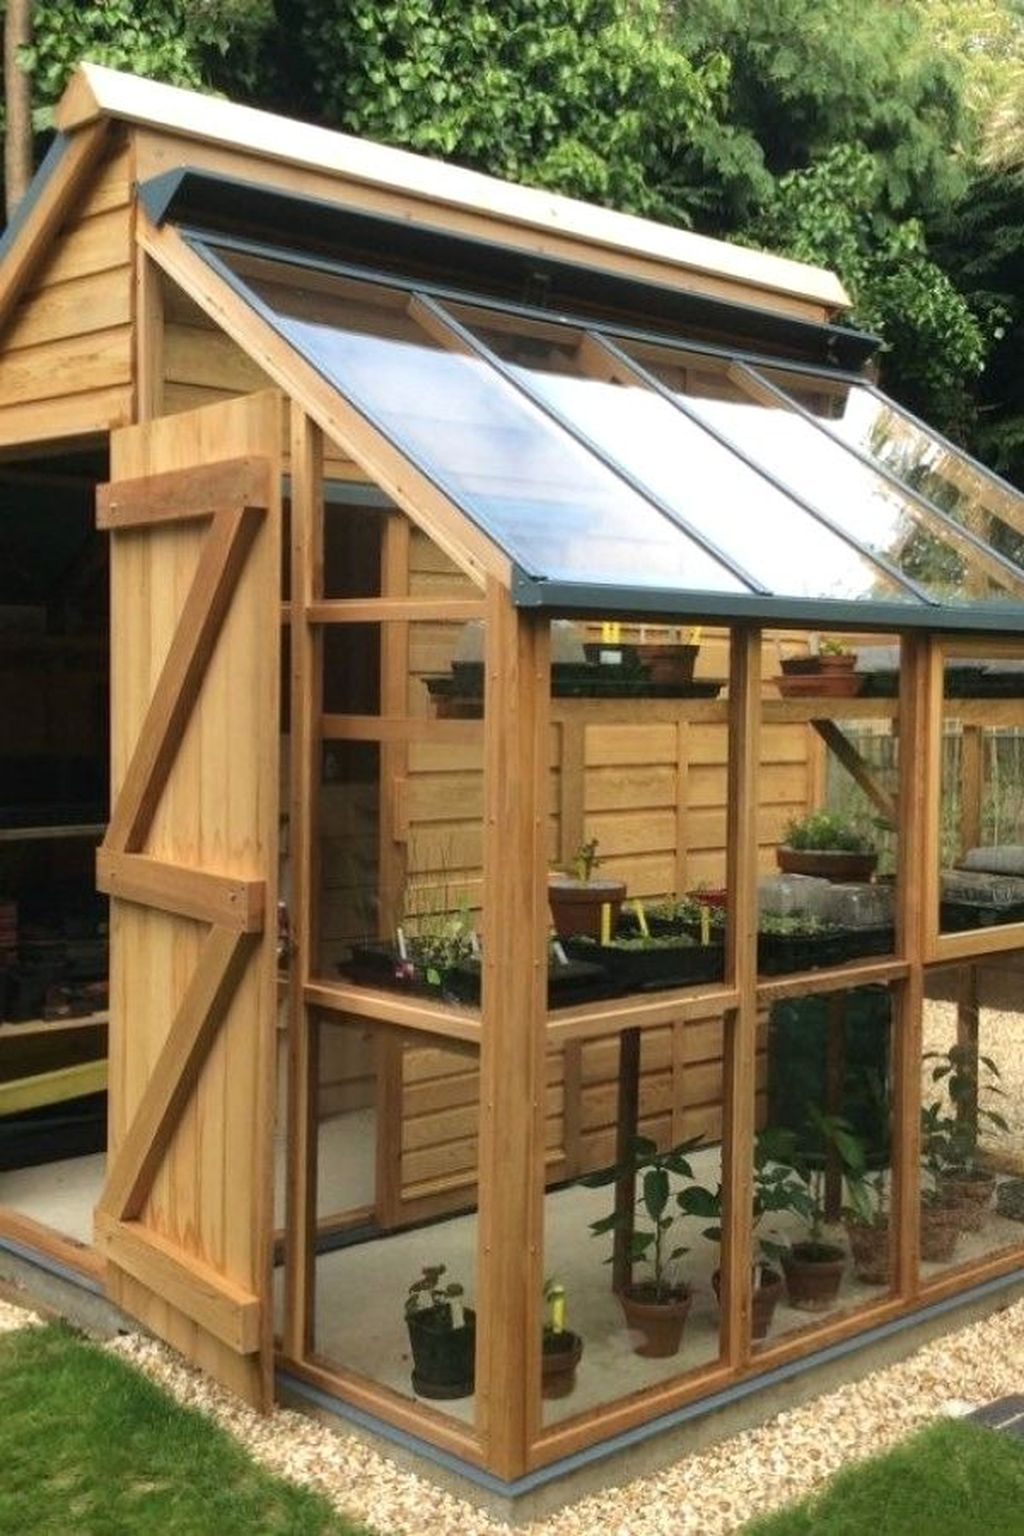 For The Traditional Gardeners Amongst Us A Garden Shed Is Wooden At Least 6 Feet By 4 Feet And Probably Bigger With A Backyard Greenhouse Shed Shed Design Backyard greenhouse garden shed